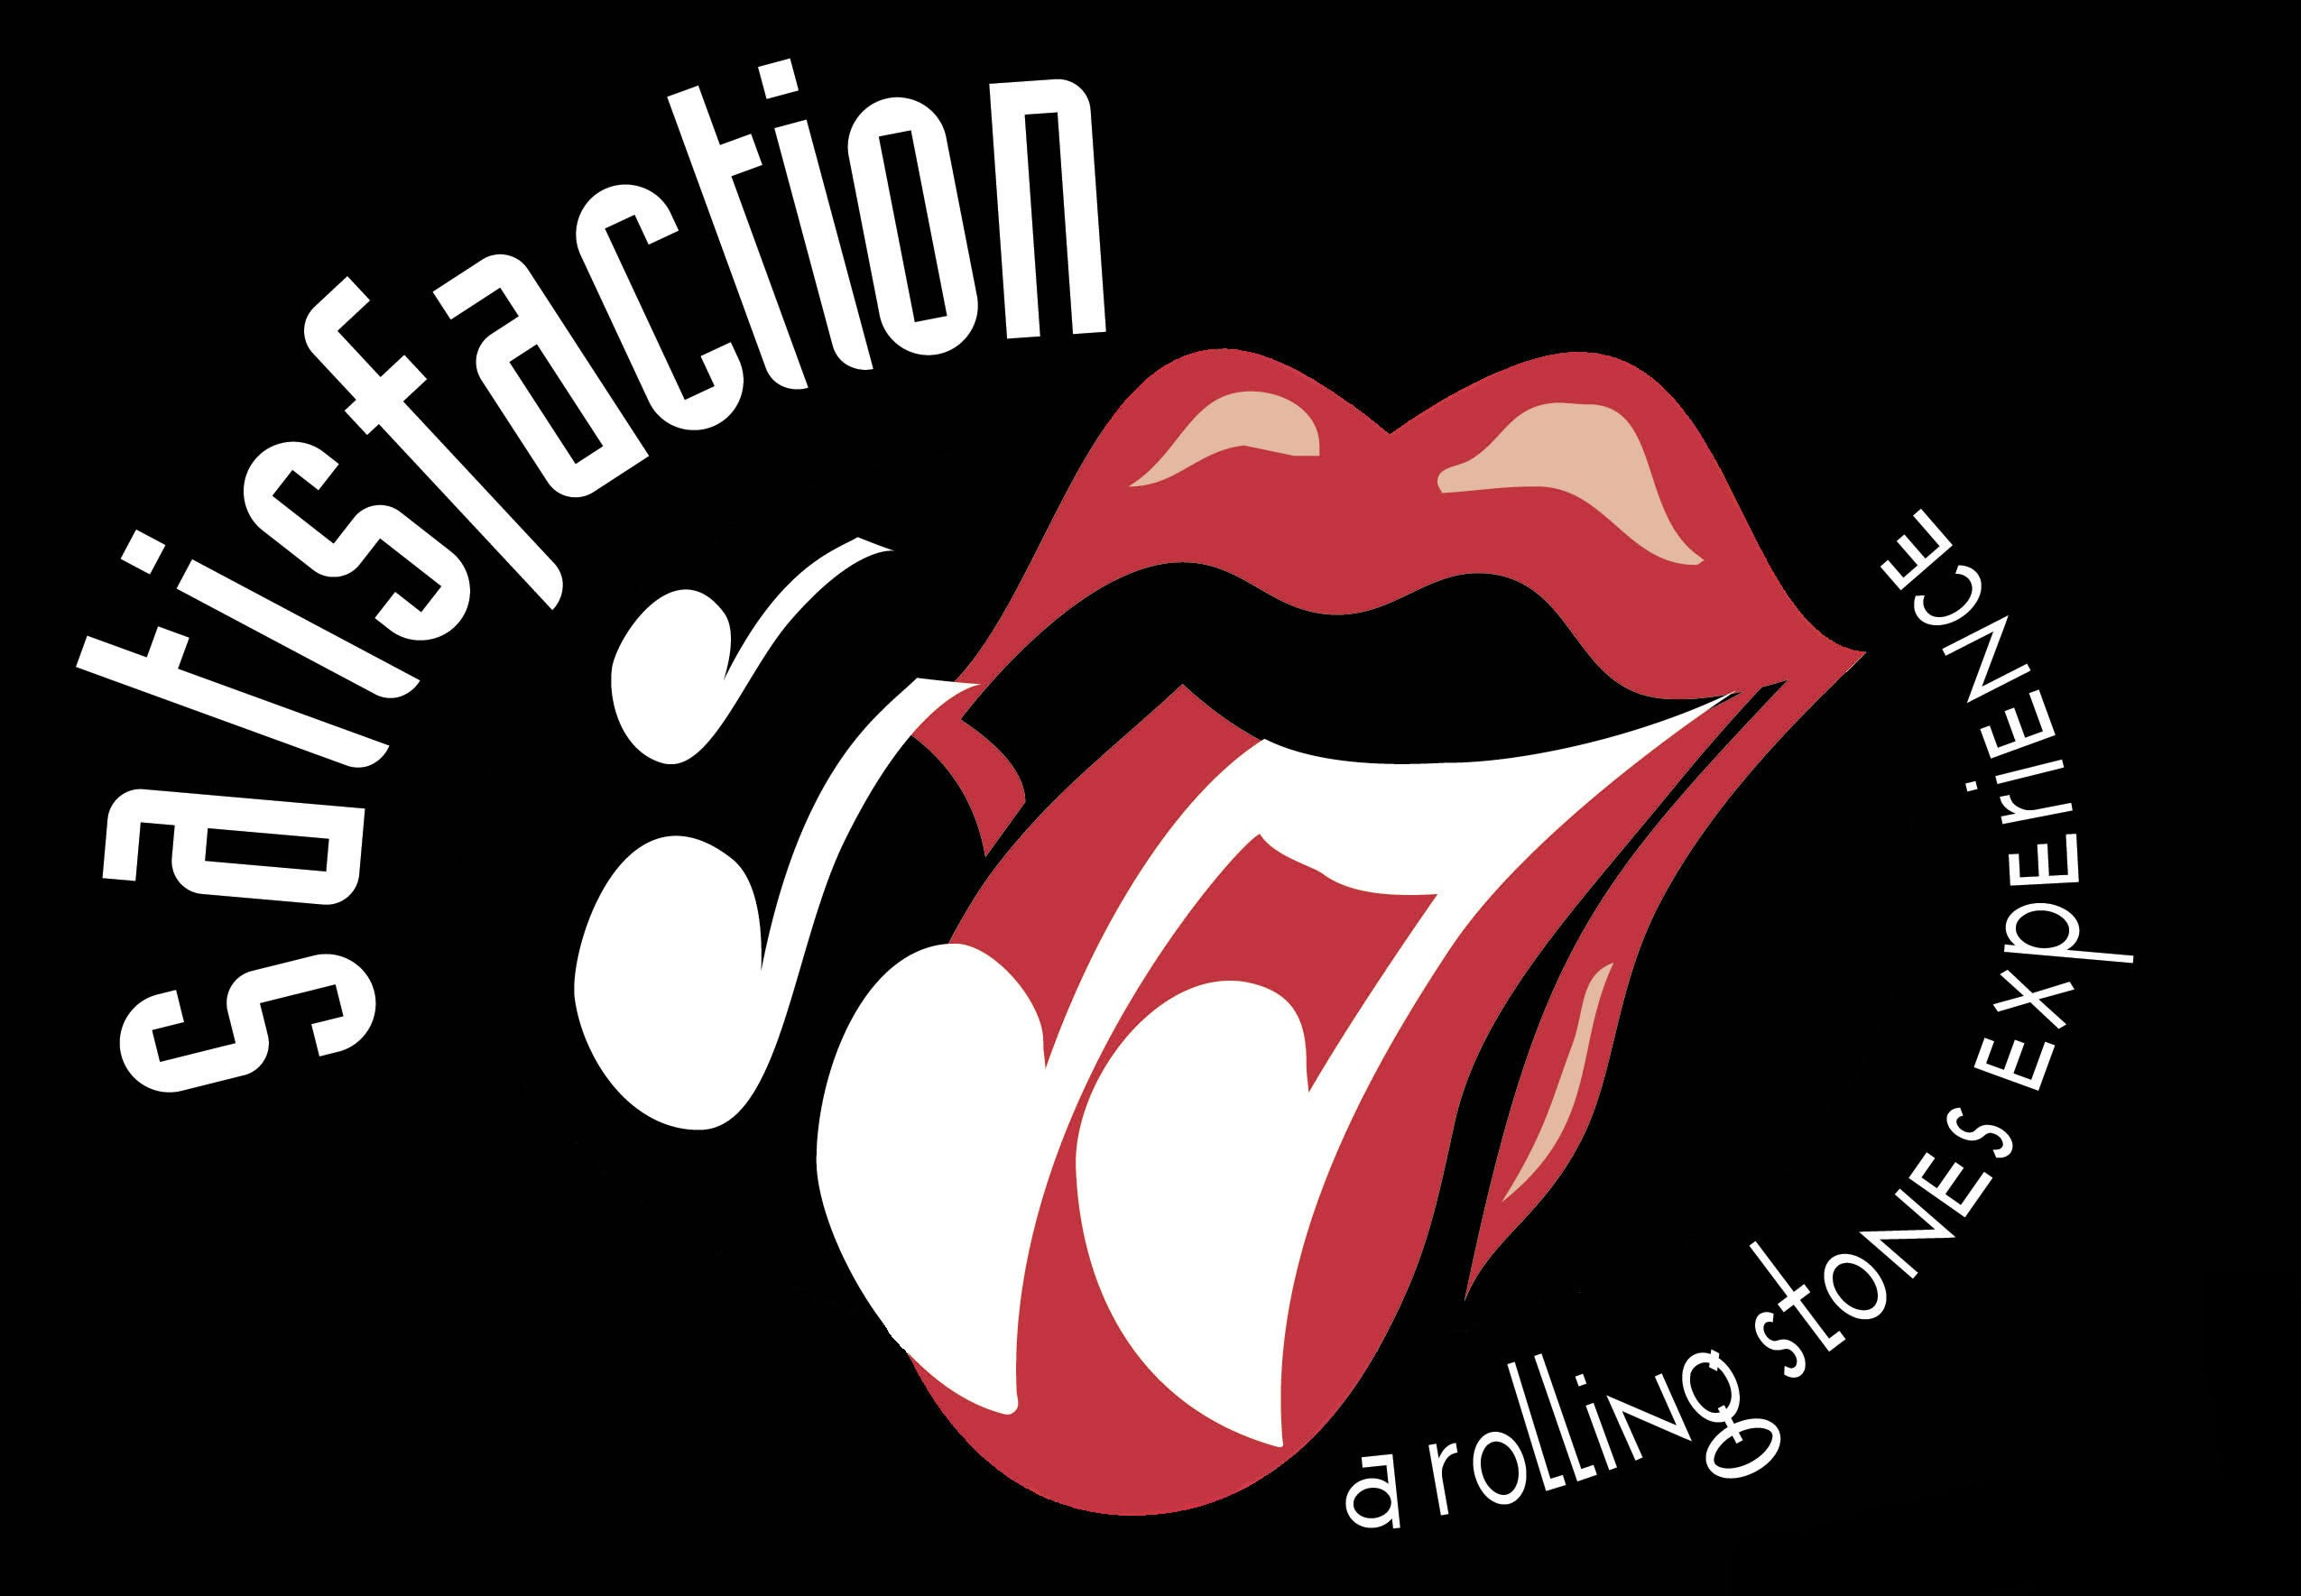 The rolling stones band symbol view symbol biocorpaavc